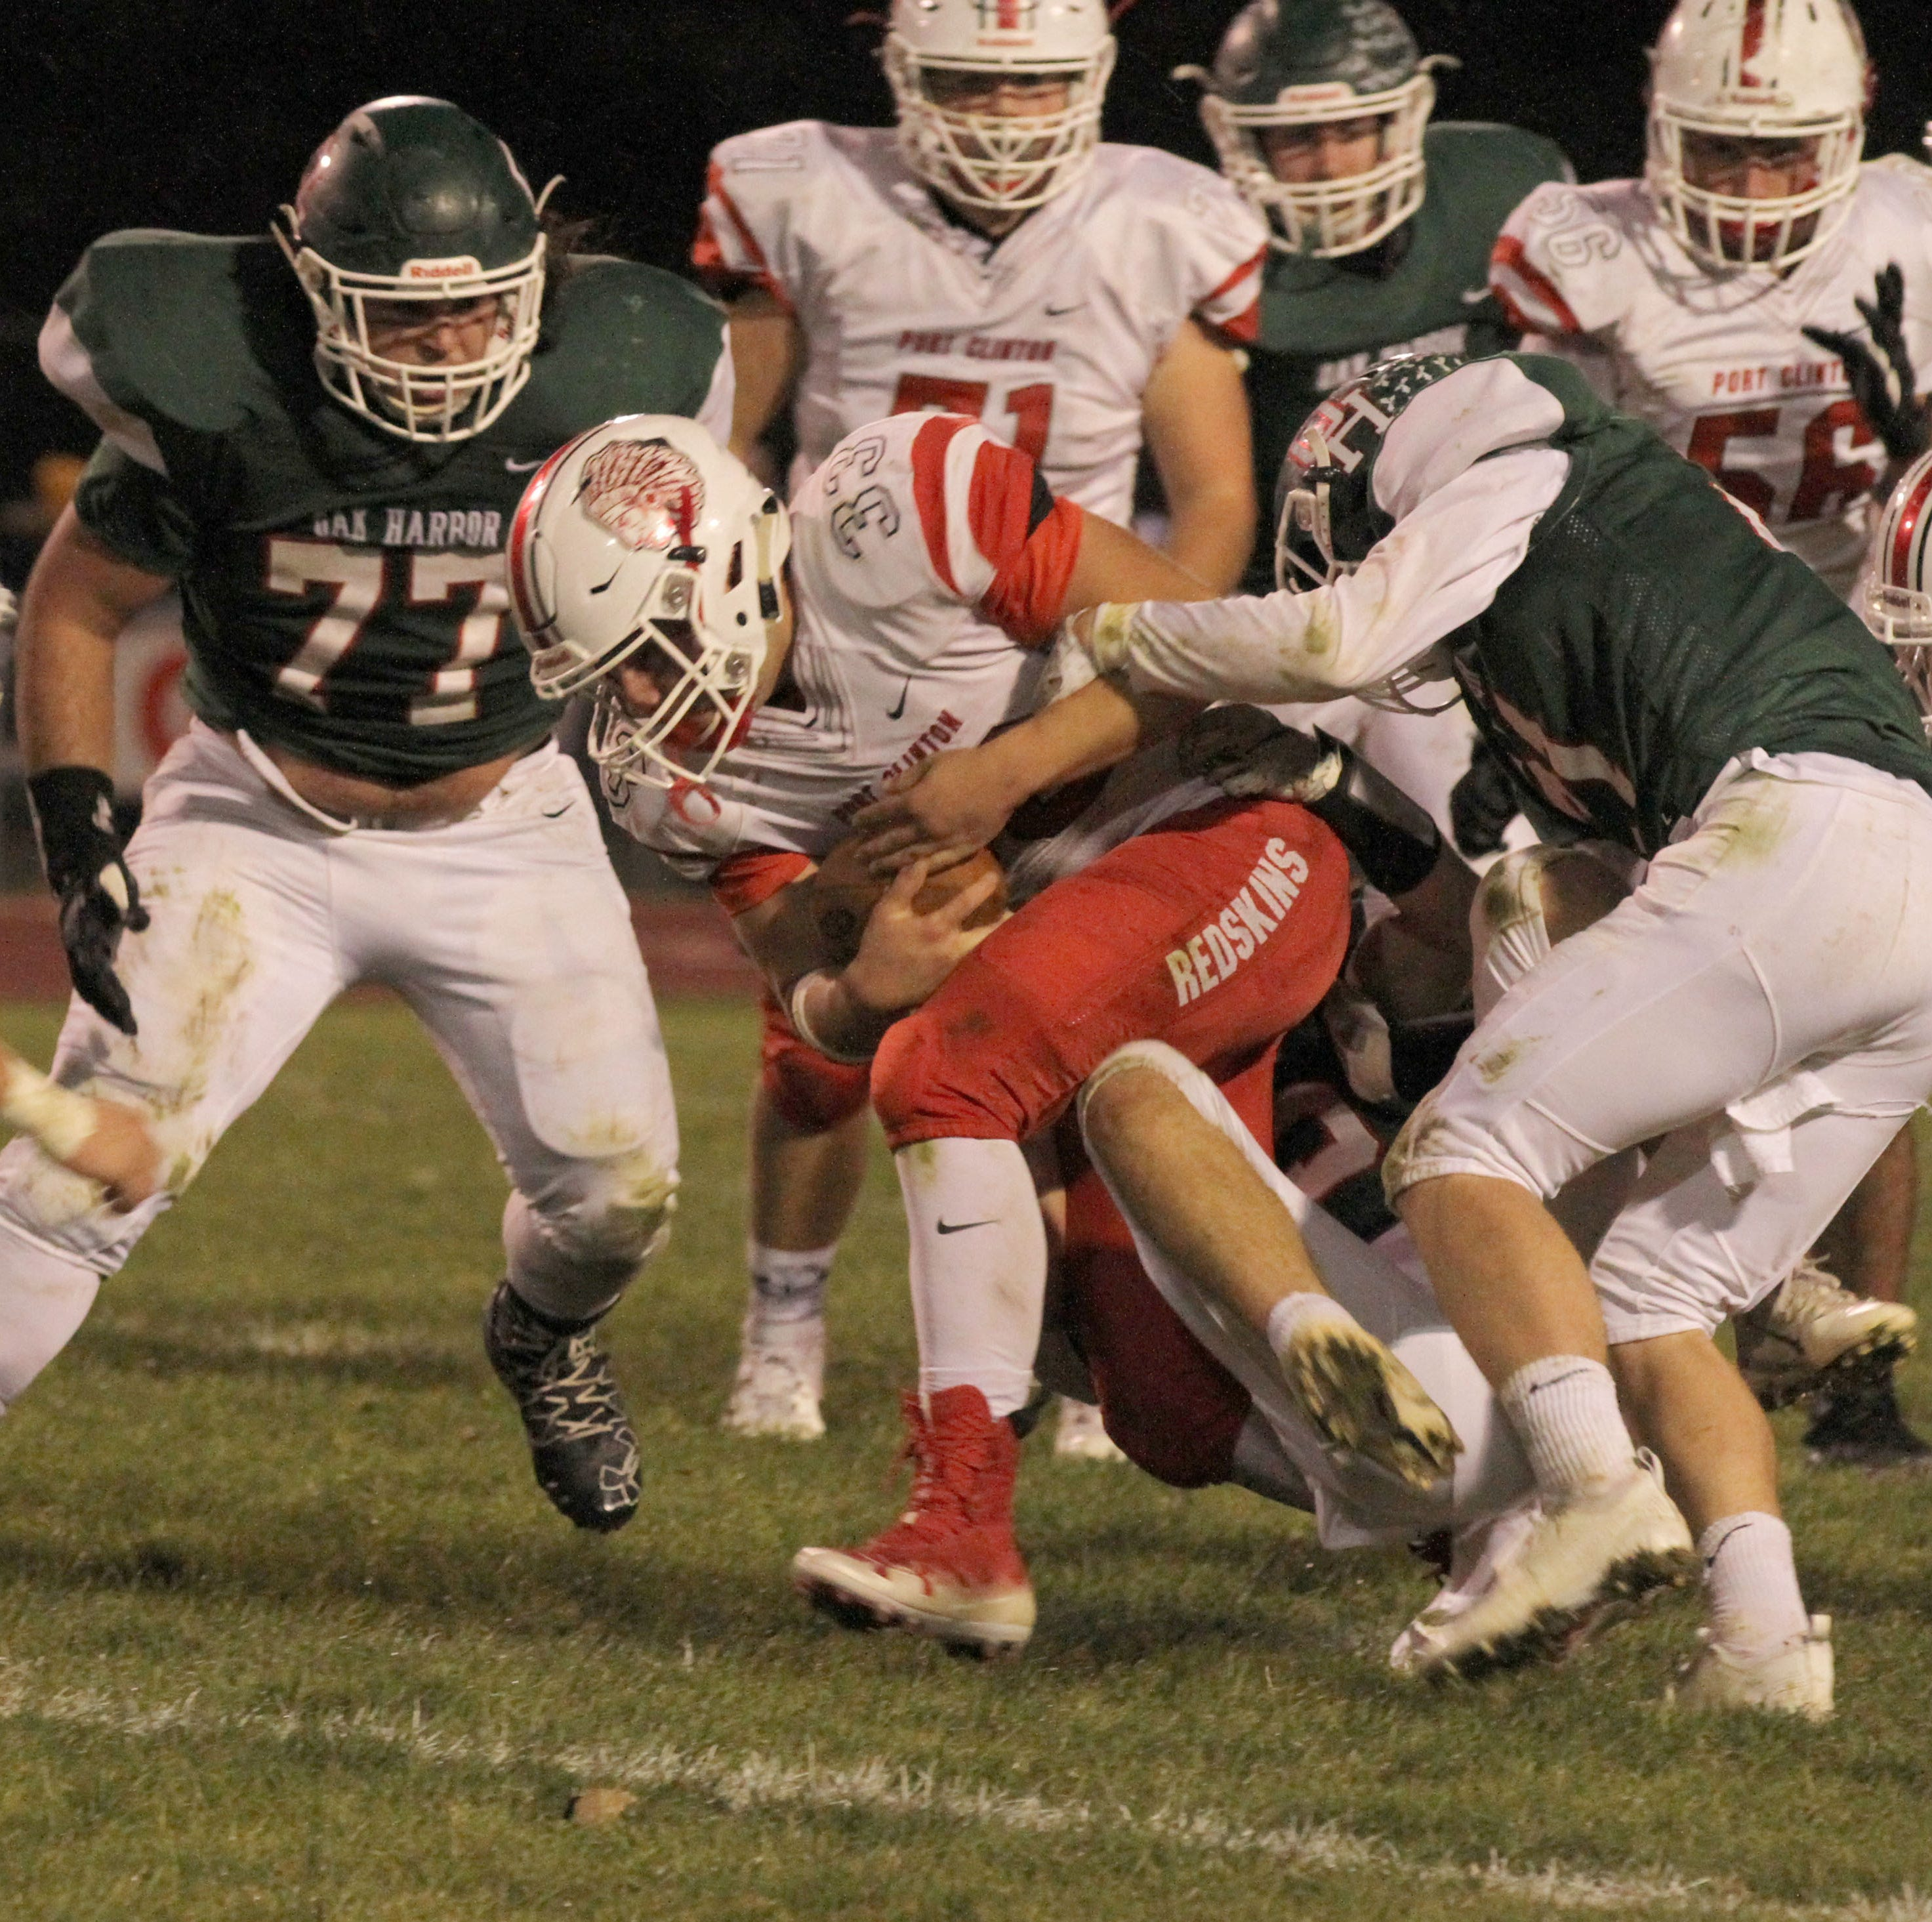 Roob's 'athlete of week' status is permanent in Oak Harbor